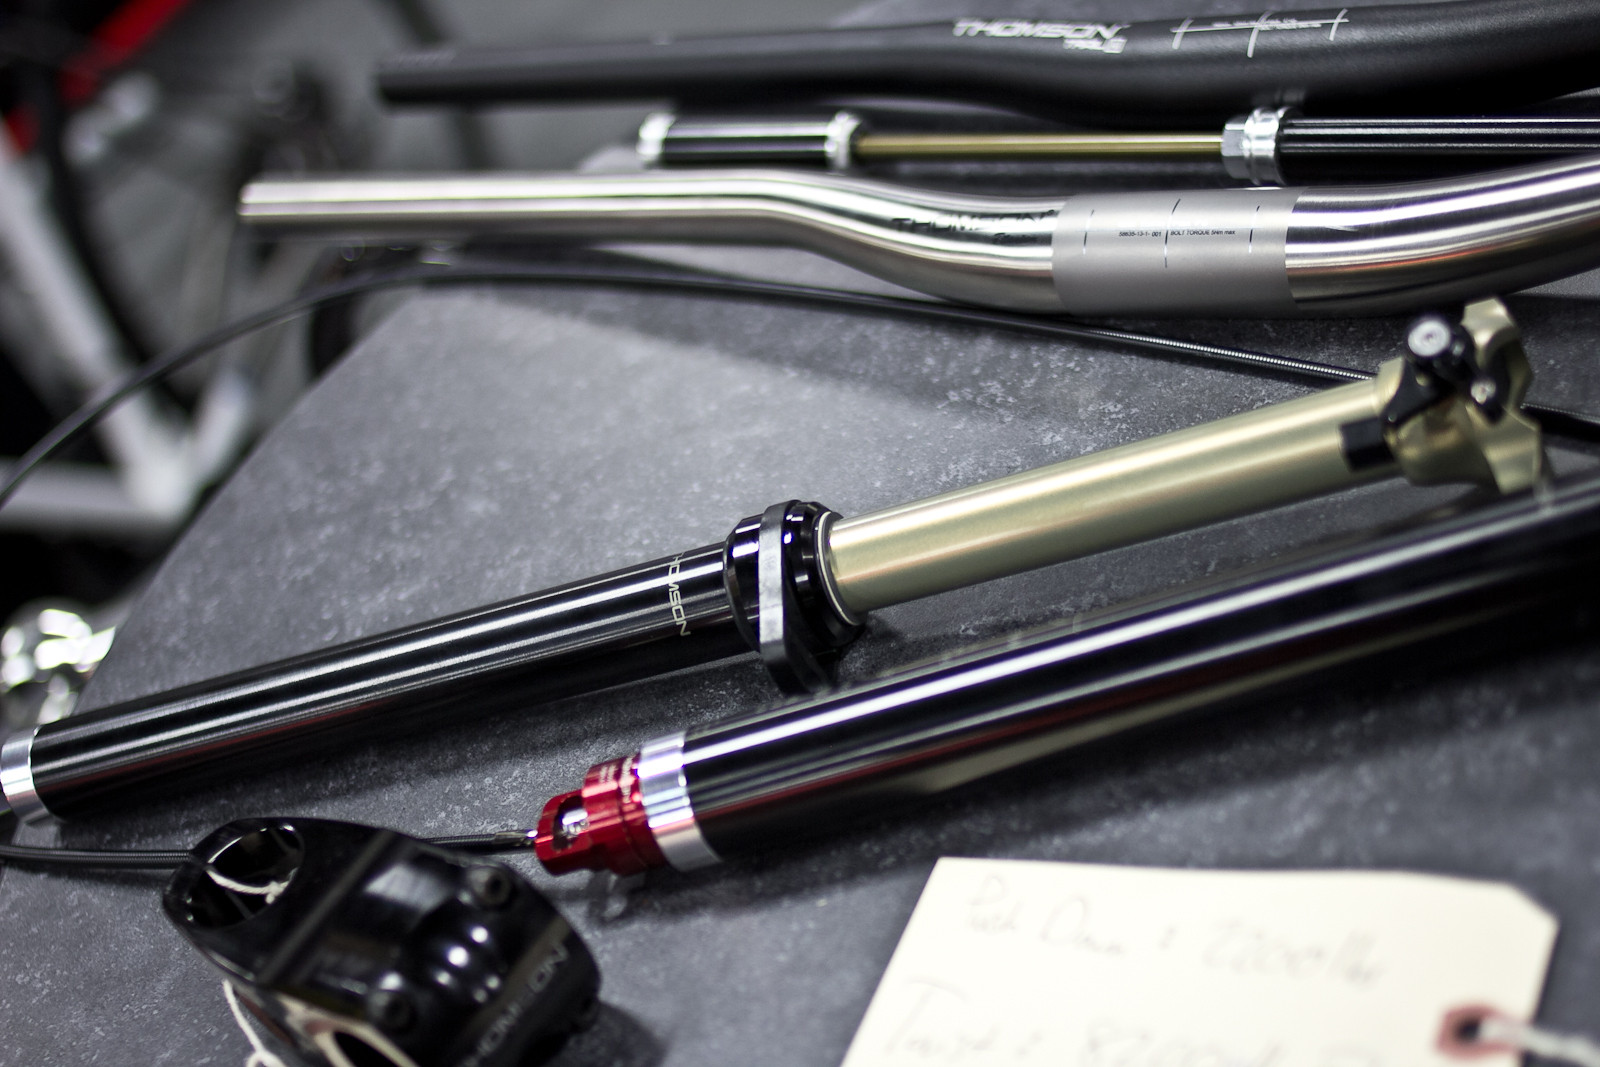 Prototype 27.2mm Thomson Elite Dropper Post - INTERBIKE: Part 2 - Some of the Latest and Greatest for 2014 - Mountain Biking Pictures - Vital MTB